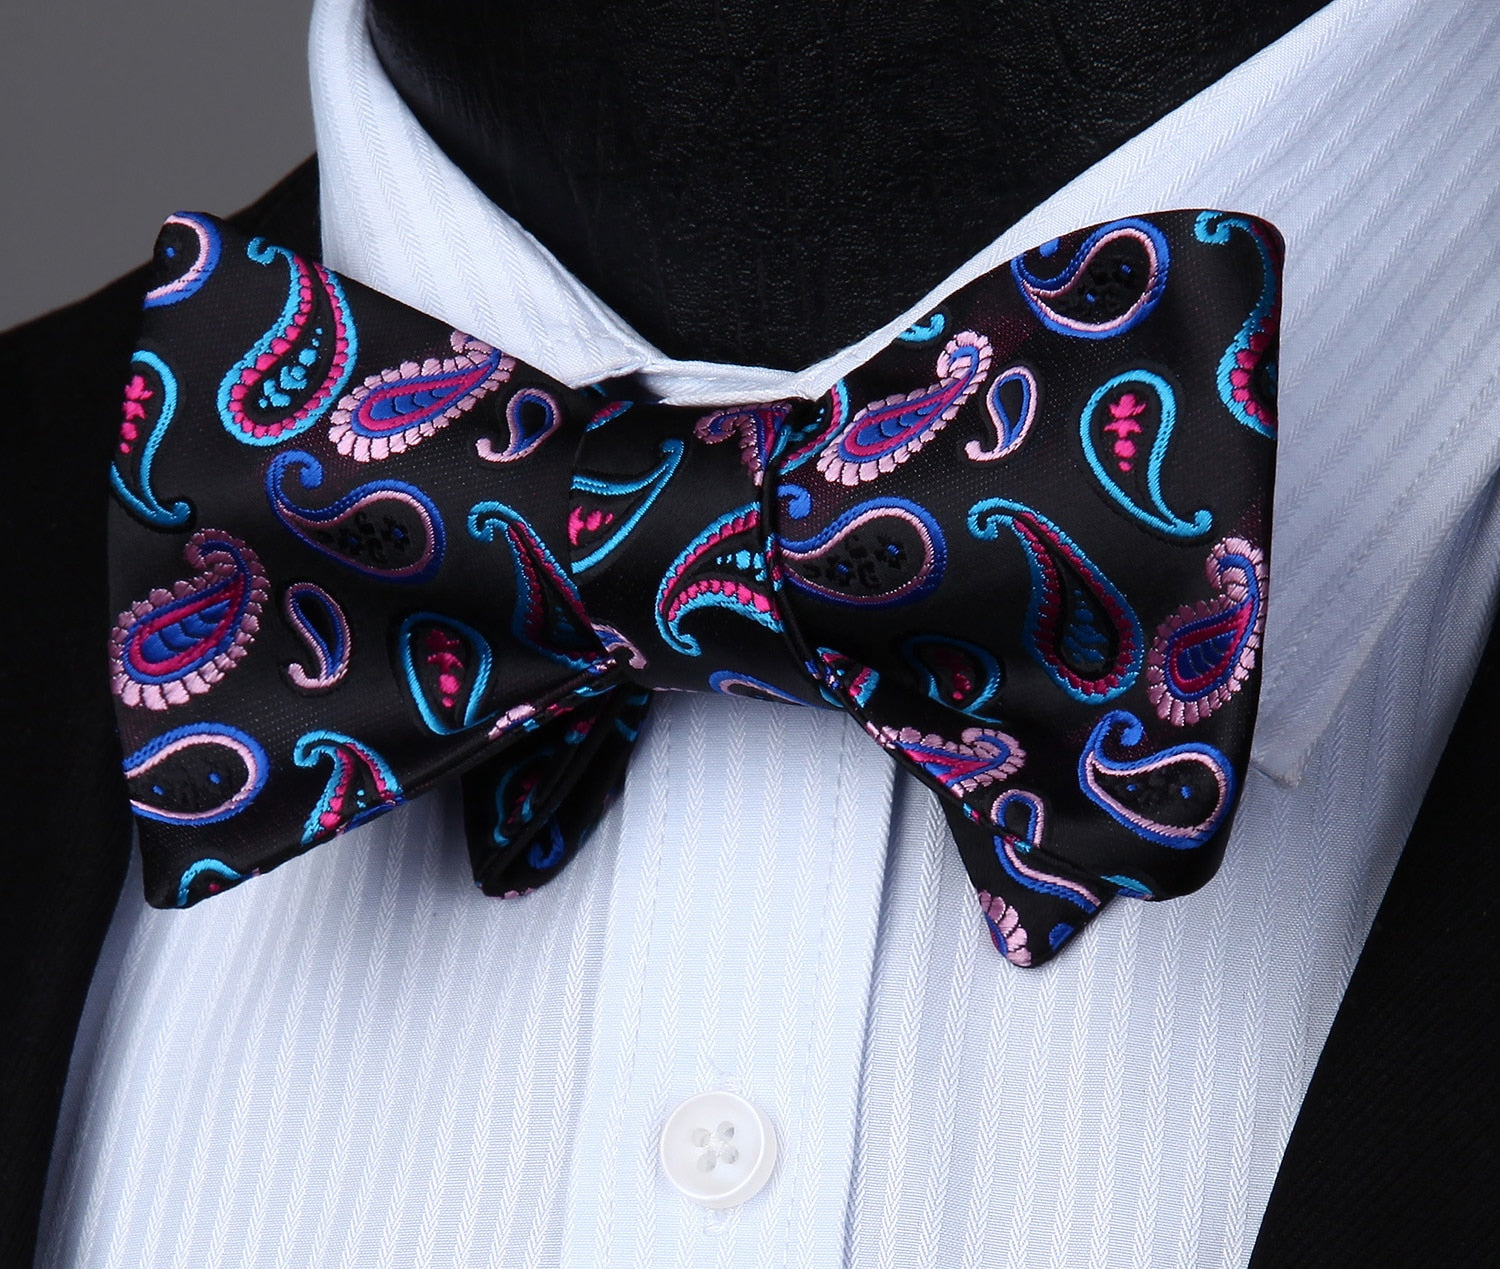 1d8a798fcf56 ... Neon Paisley Bow Tie and Pocket Square - SOPHGENT ...